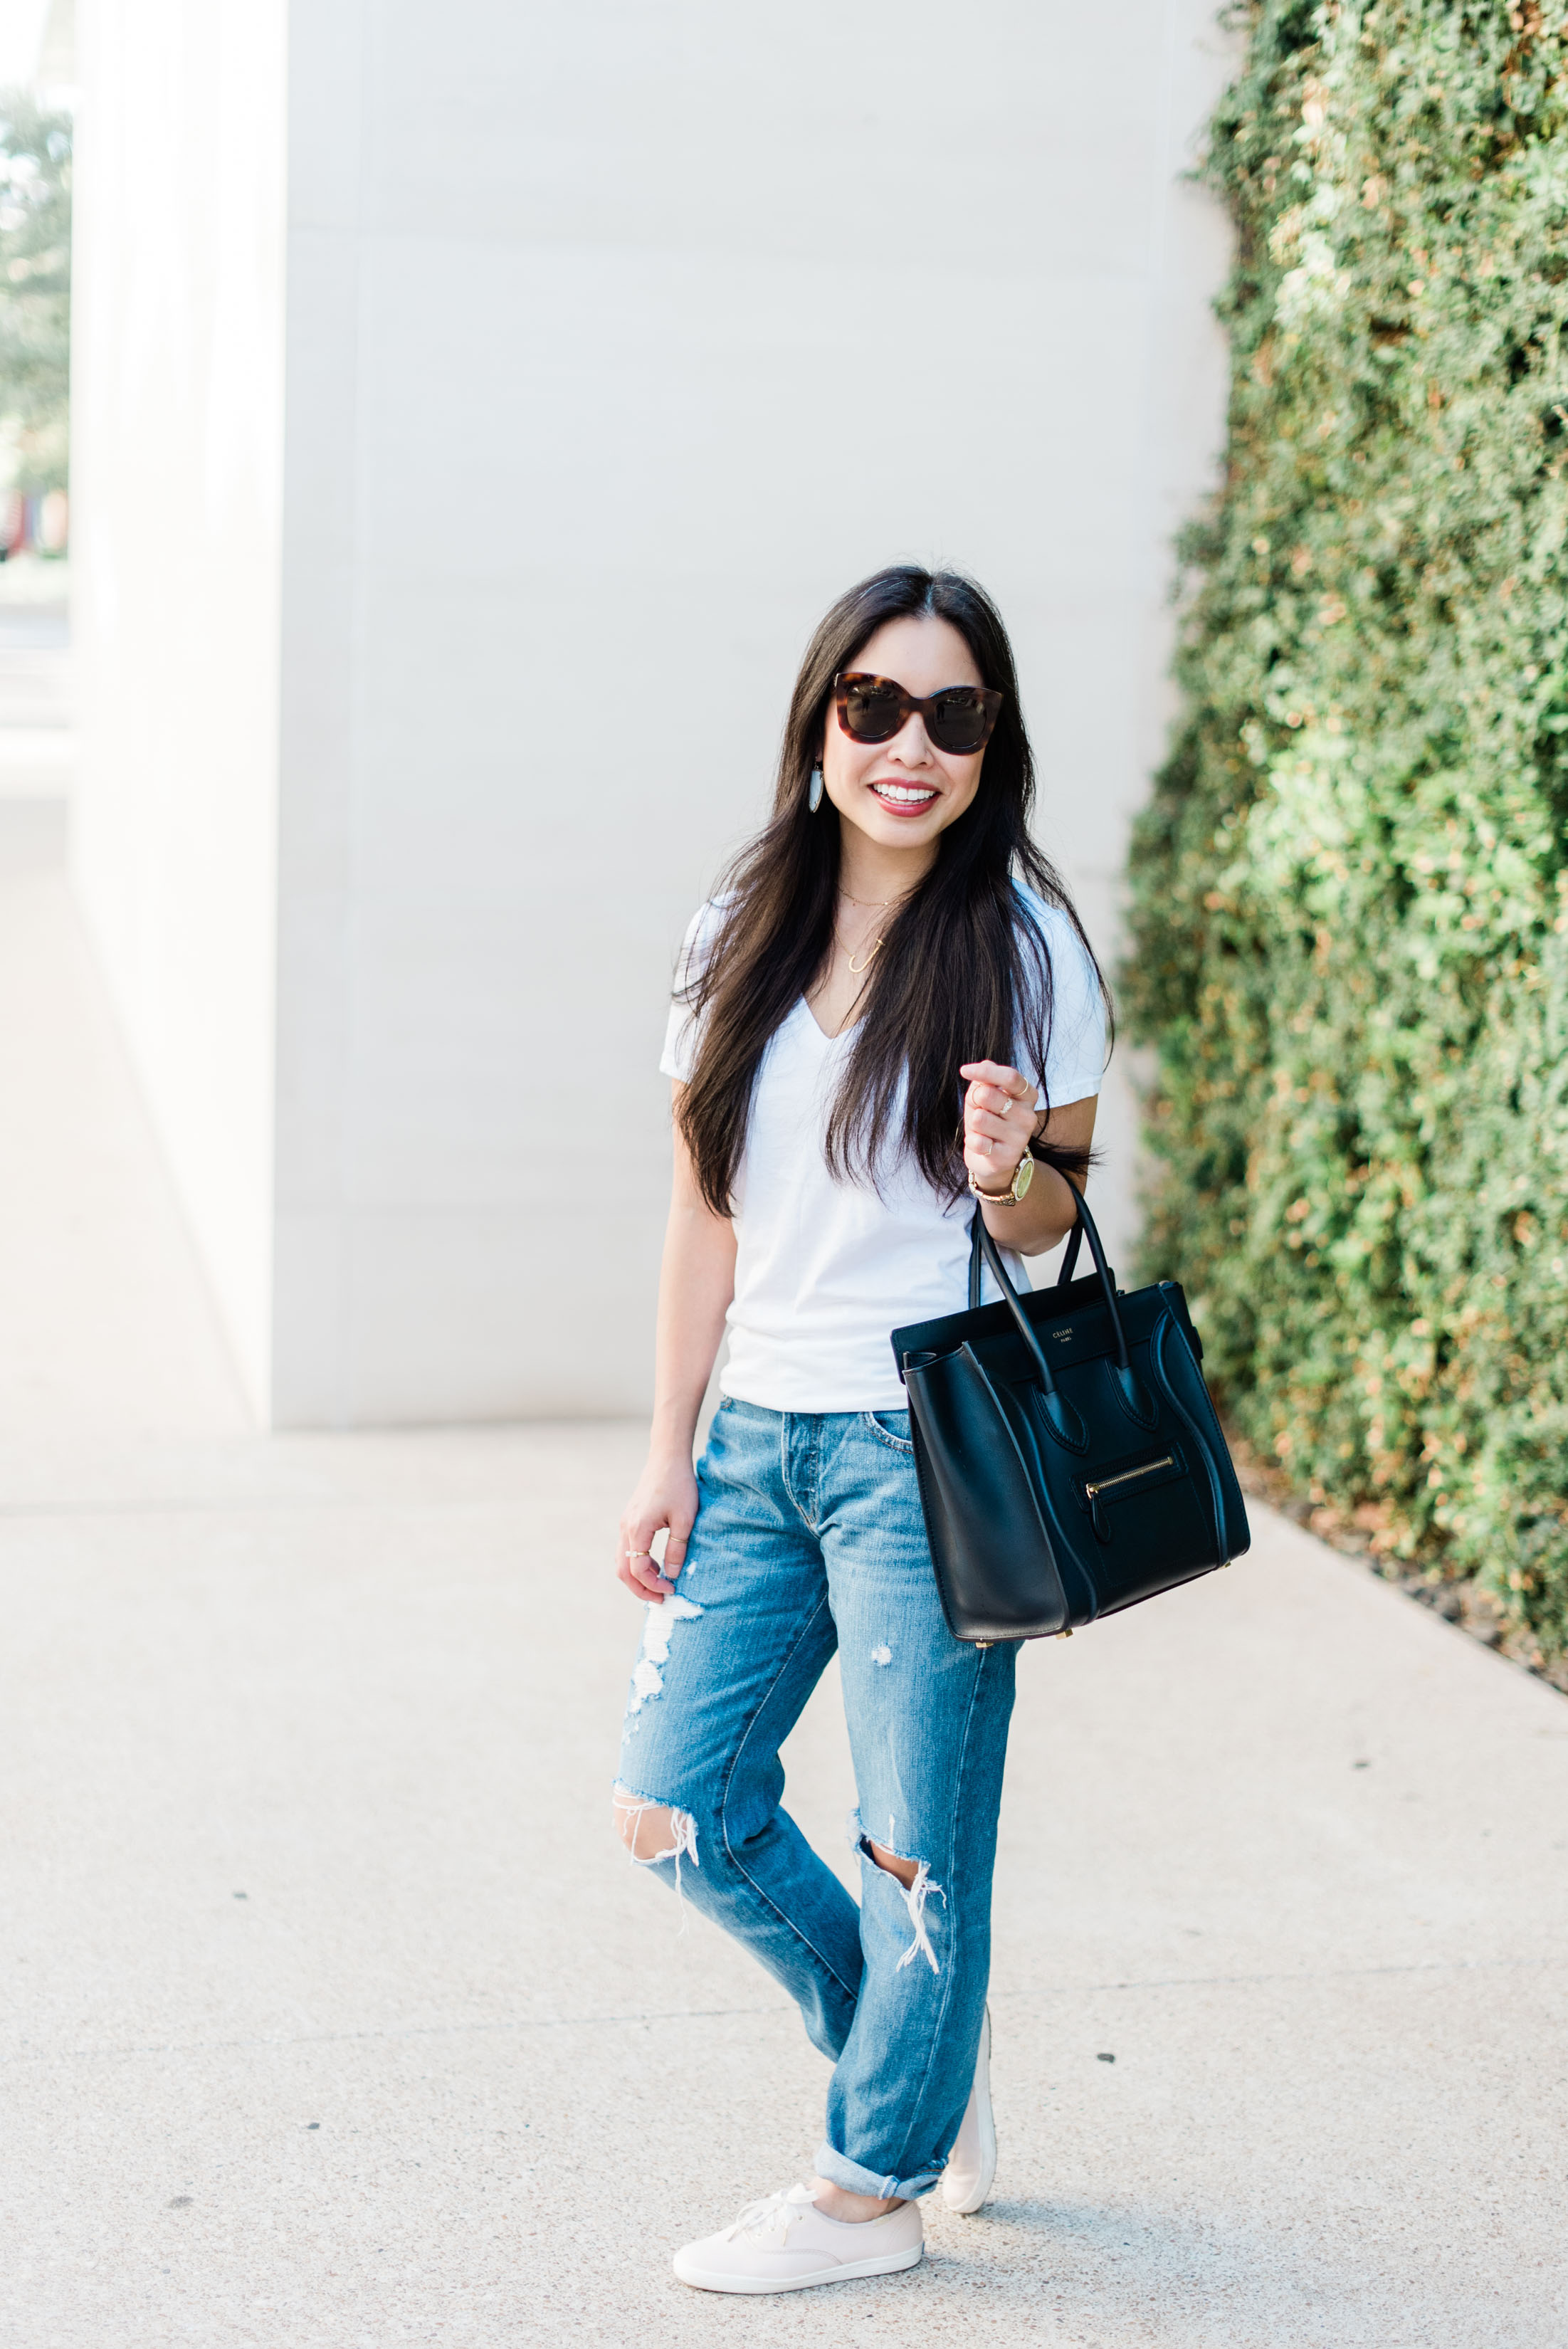 the boyfriend jeans & white tee -- jannadoan.com